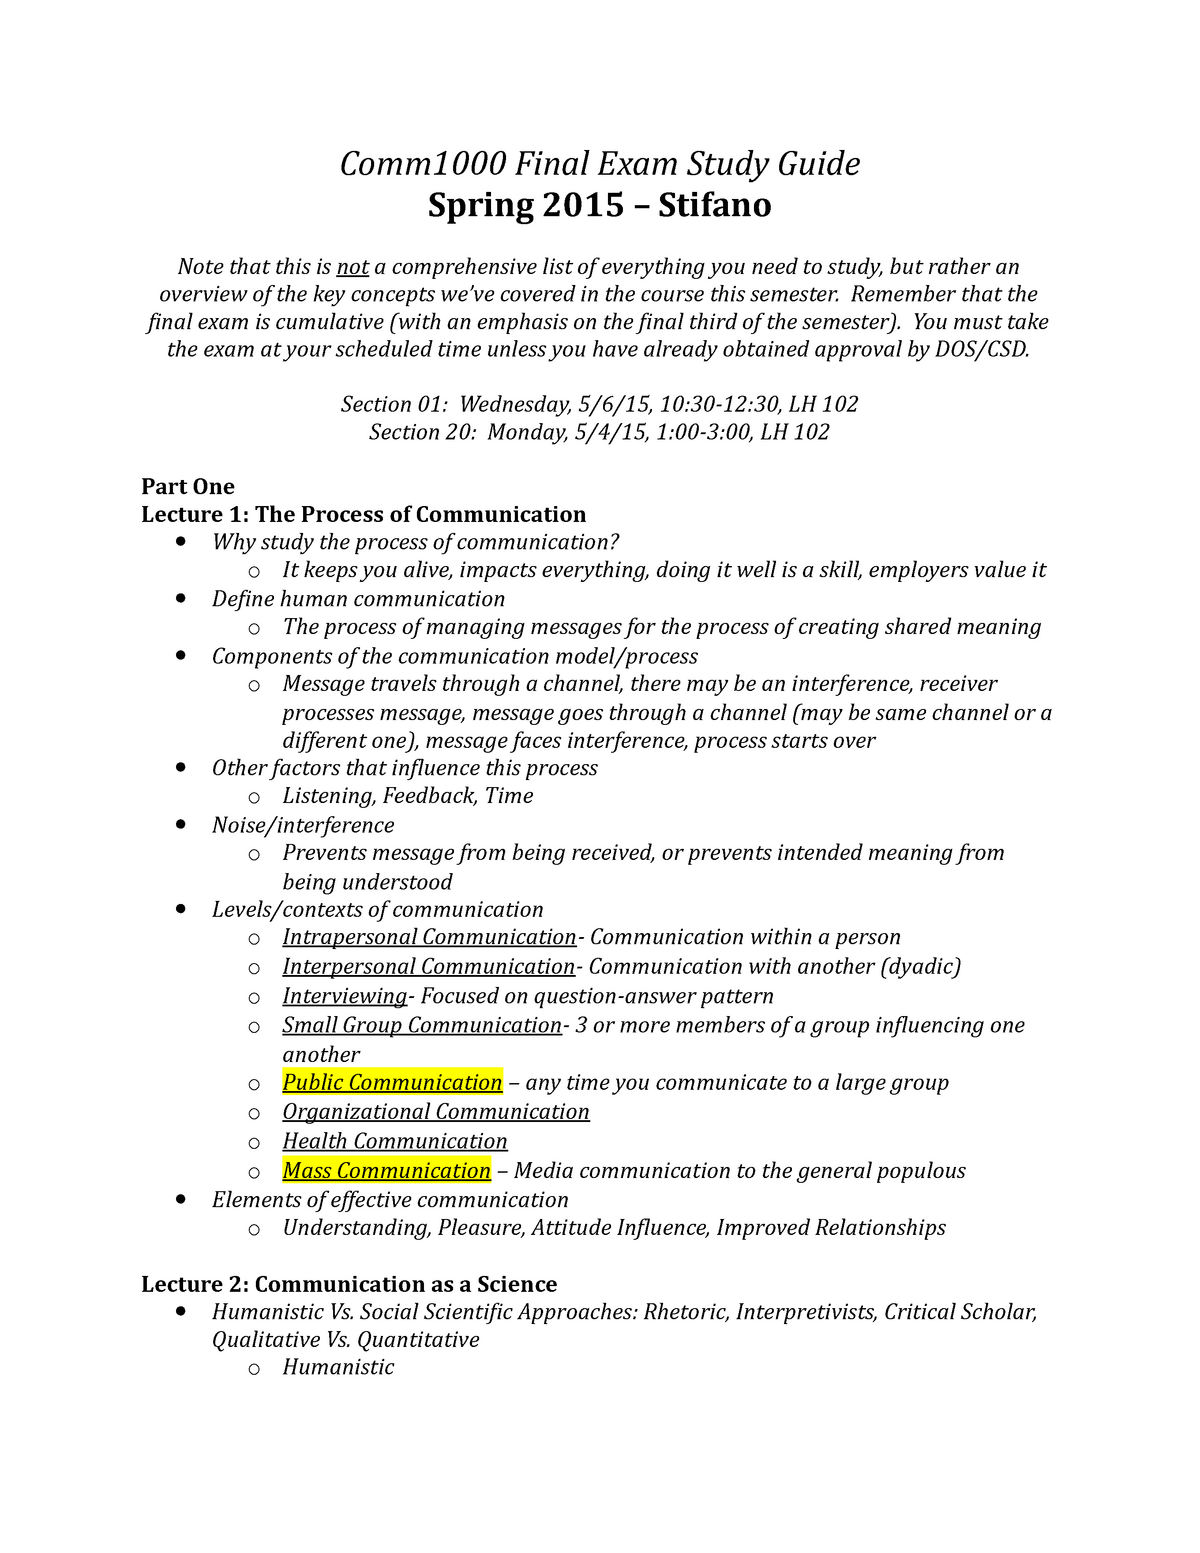 Summary Steve Stifano Final Study Guide Final Exam Study Guide Spring 2015 Stifano Note That This Is Not Comprehensive List Of Everything You Need To Study Studocu Social information processing (sip) theory posits that online communicators. steve stifano final study guide final